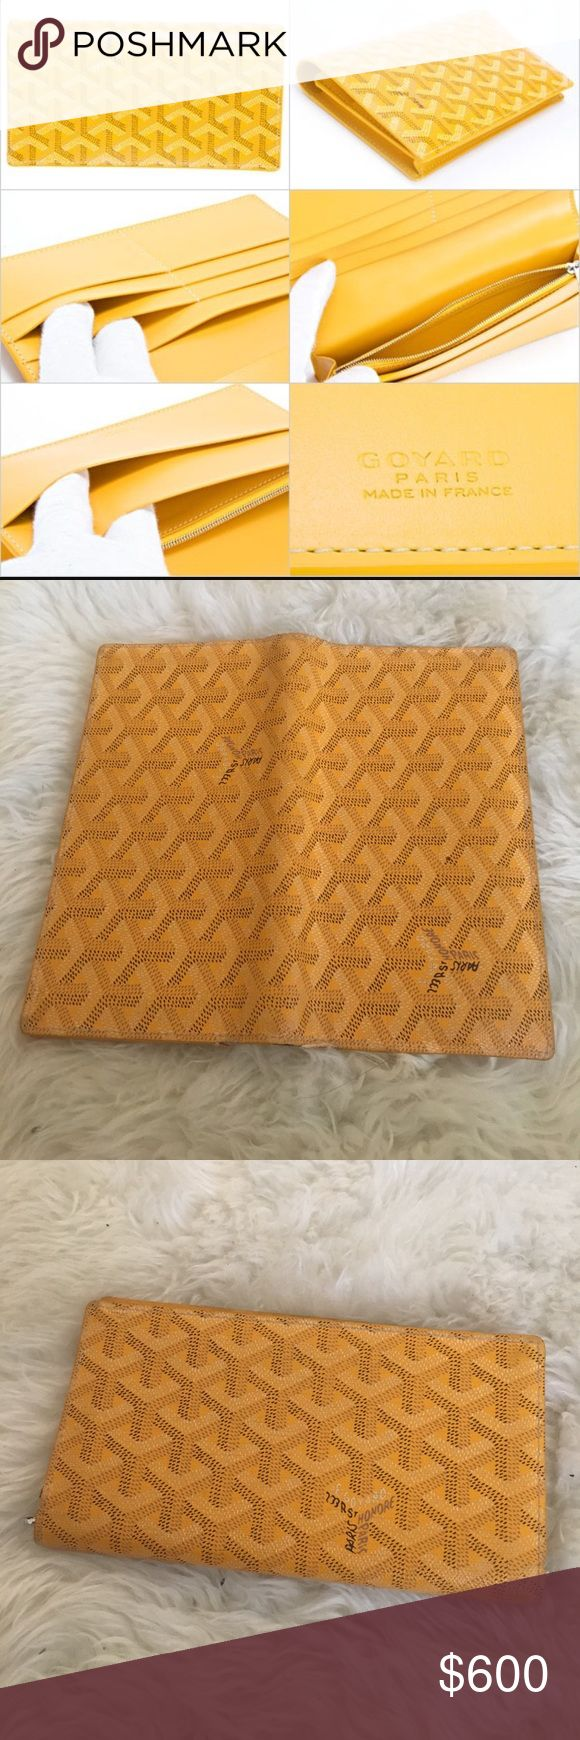 Goyard Wallet Authentic Goyard yellow long bifold wallet (unisex). The yellow products in Goyard are normally priced higher. This was purchased in the Goyard in Saint Honoré, Paris. Pre-owned by me. The slightly used parts shown in the photo can later easily be fixed in any Goyard shop. Open to any price offers. I priced it over 500 so you can receive the authenticity test, but you are welcome to offer lower prices! Goyard Accessories